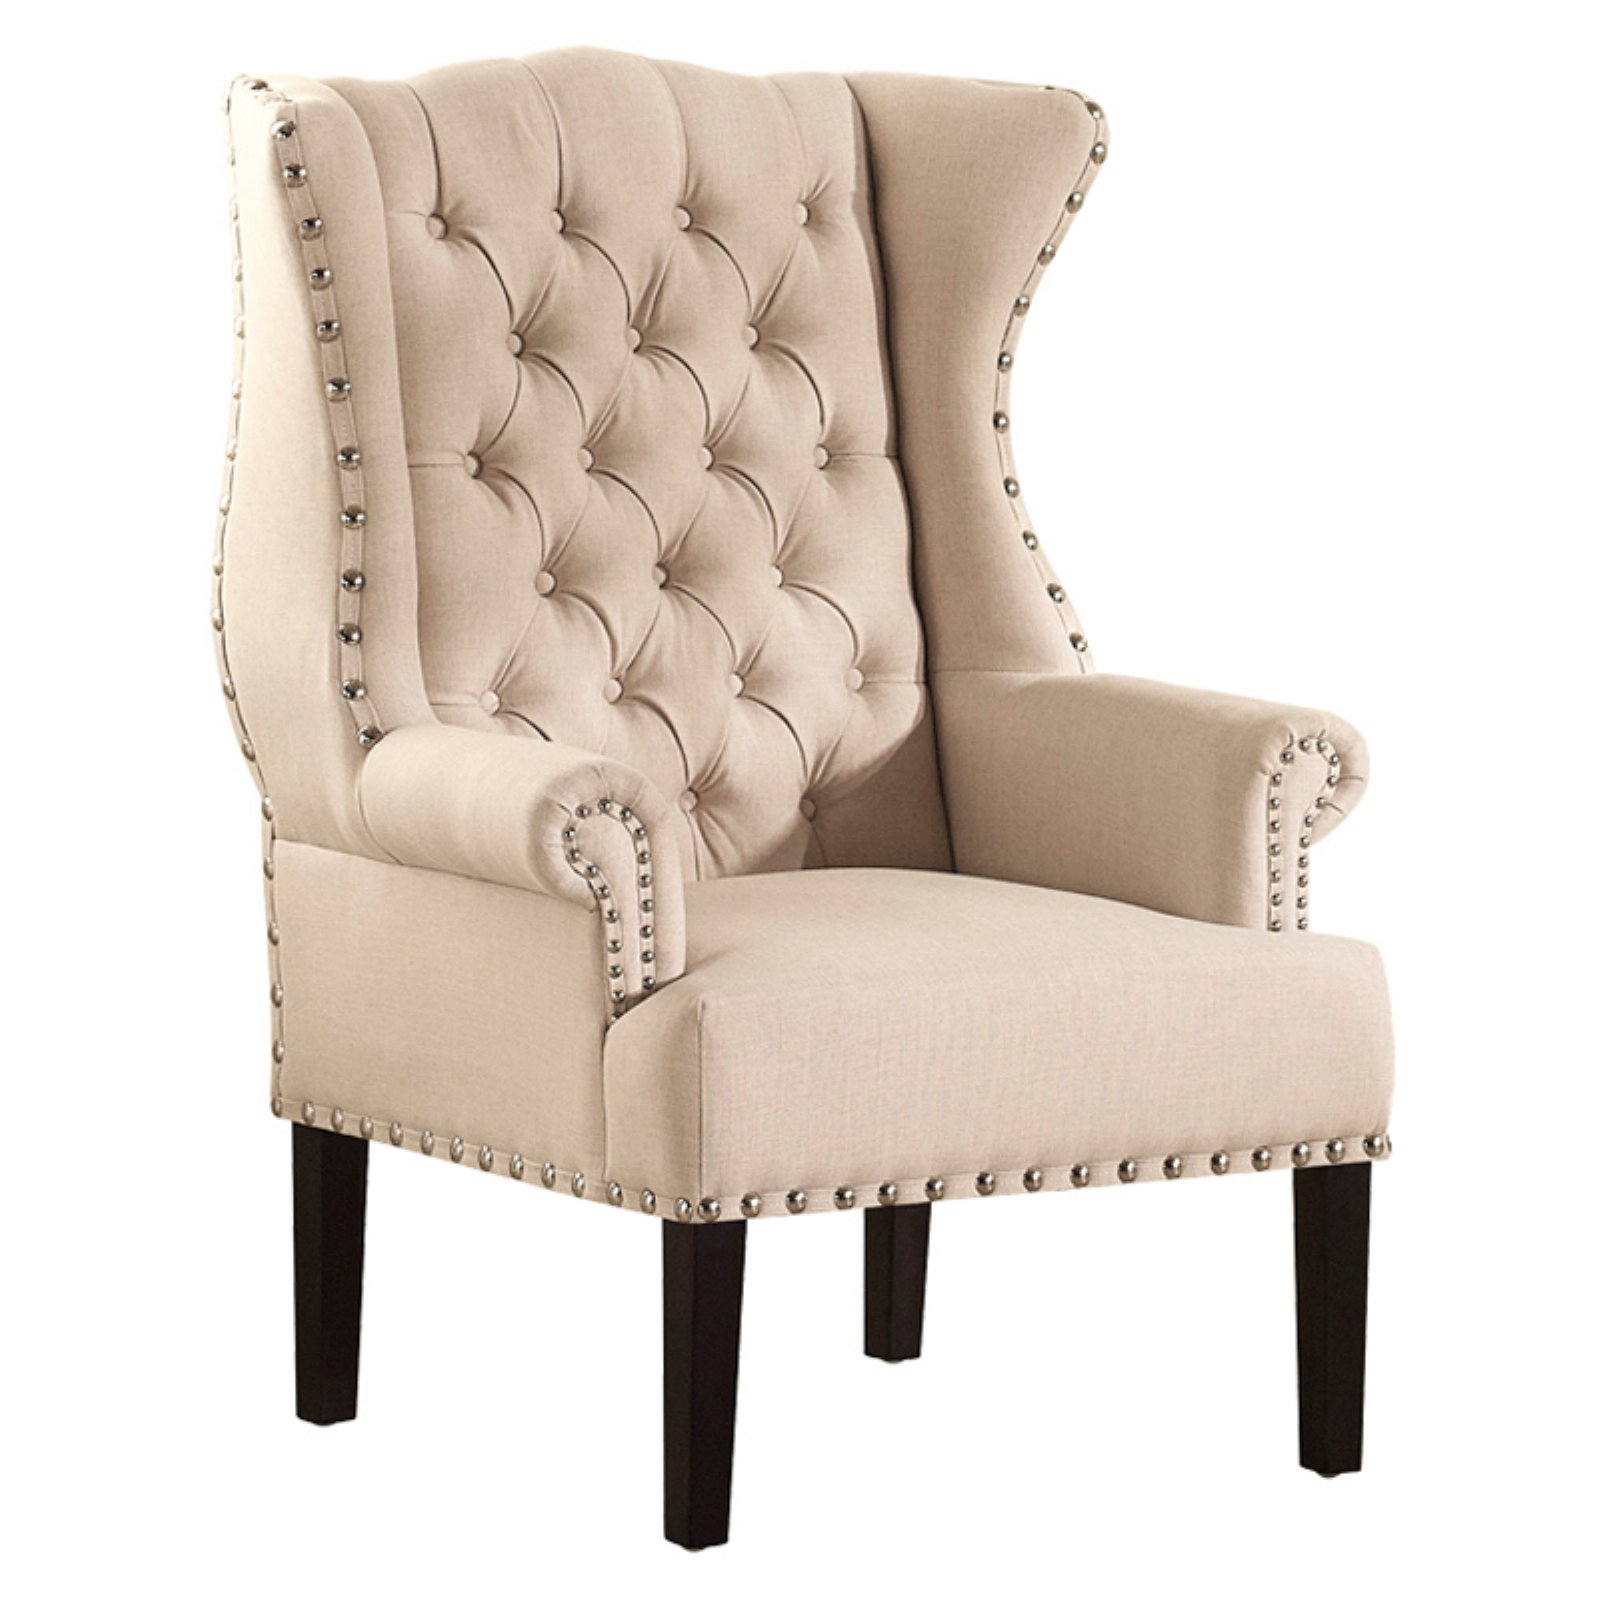 Baxton Studio Knuckey French Country Beige Linen Nailhead Wing-Back Armchair